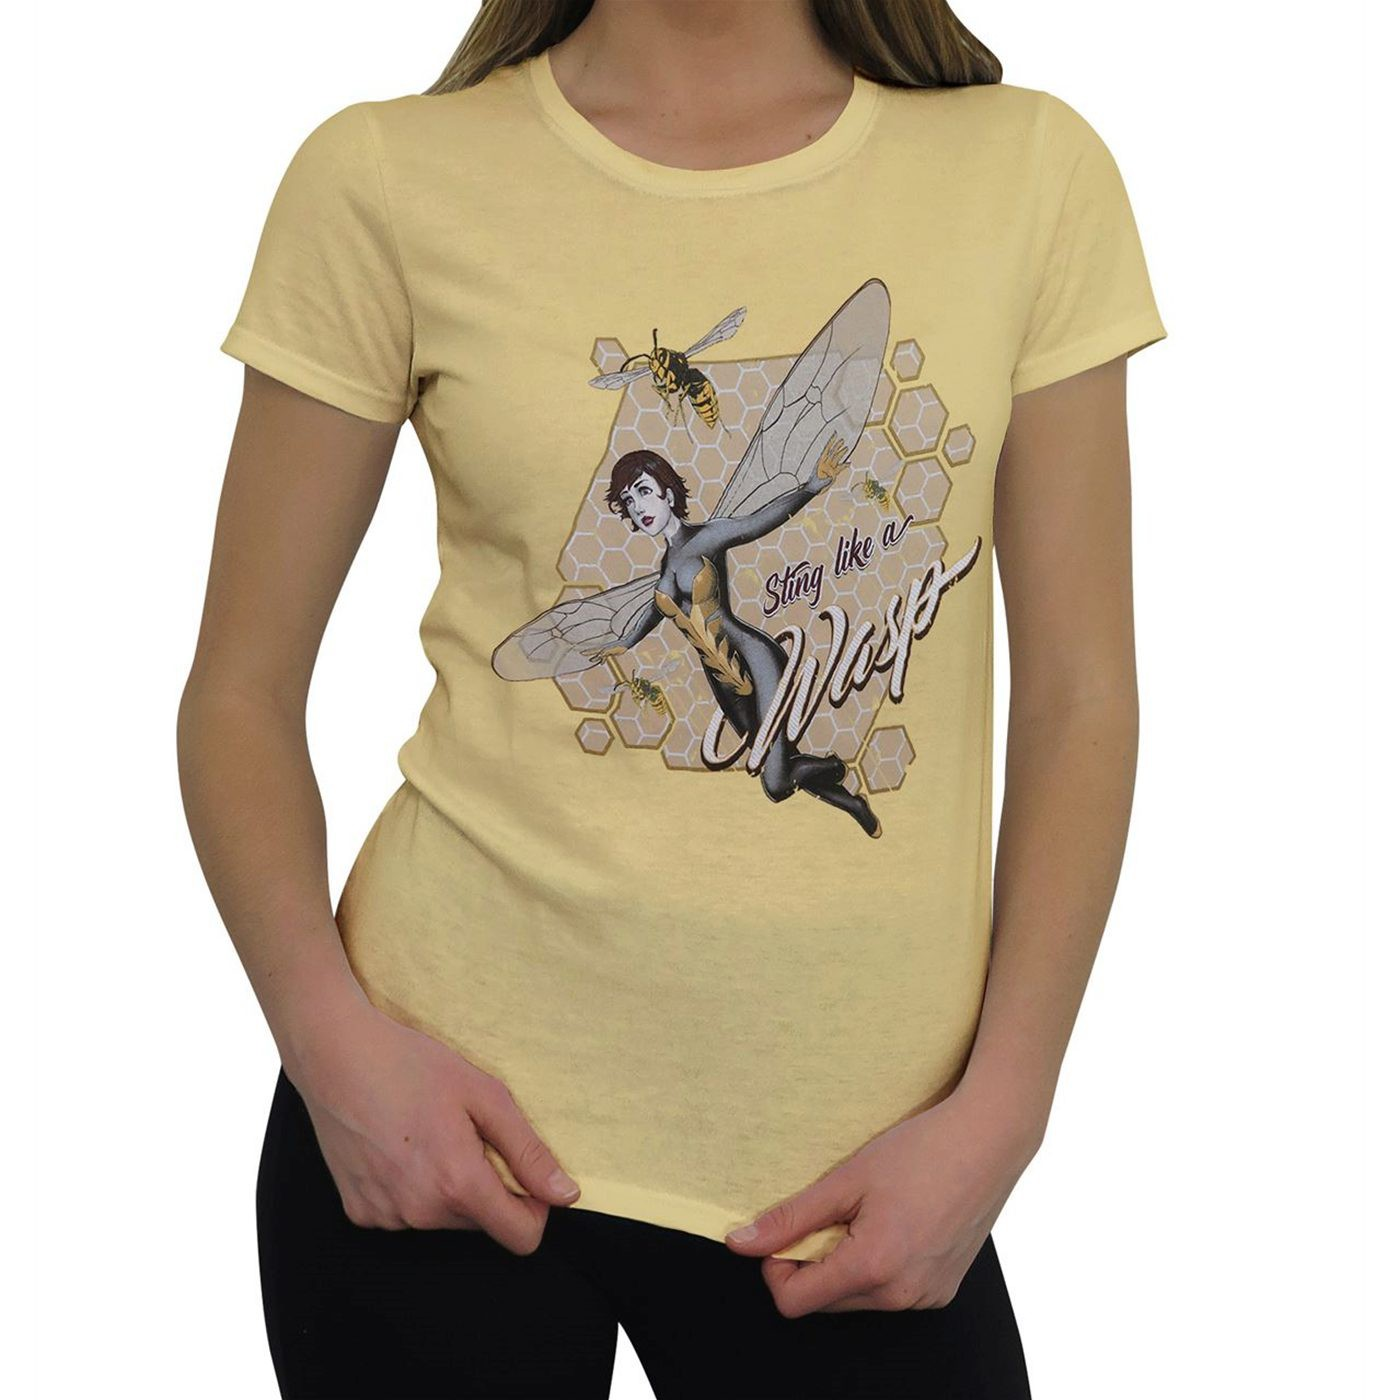 Wasp Sting Like a Wasp Women's T-Shirt